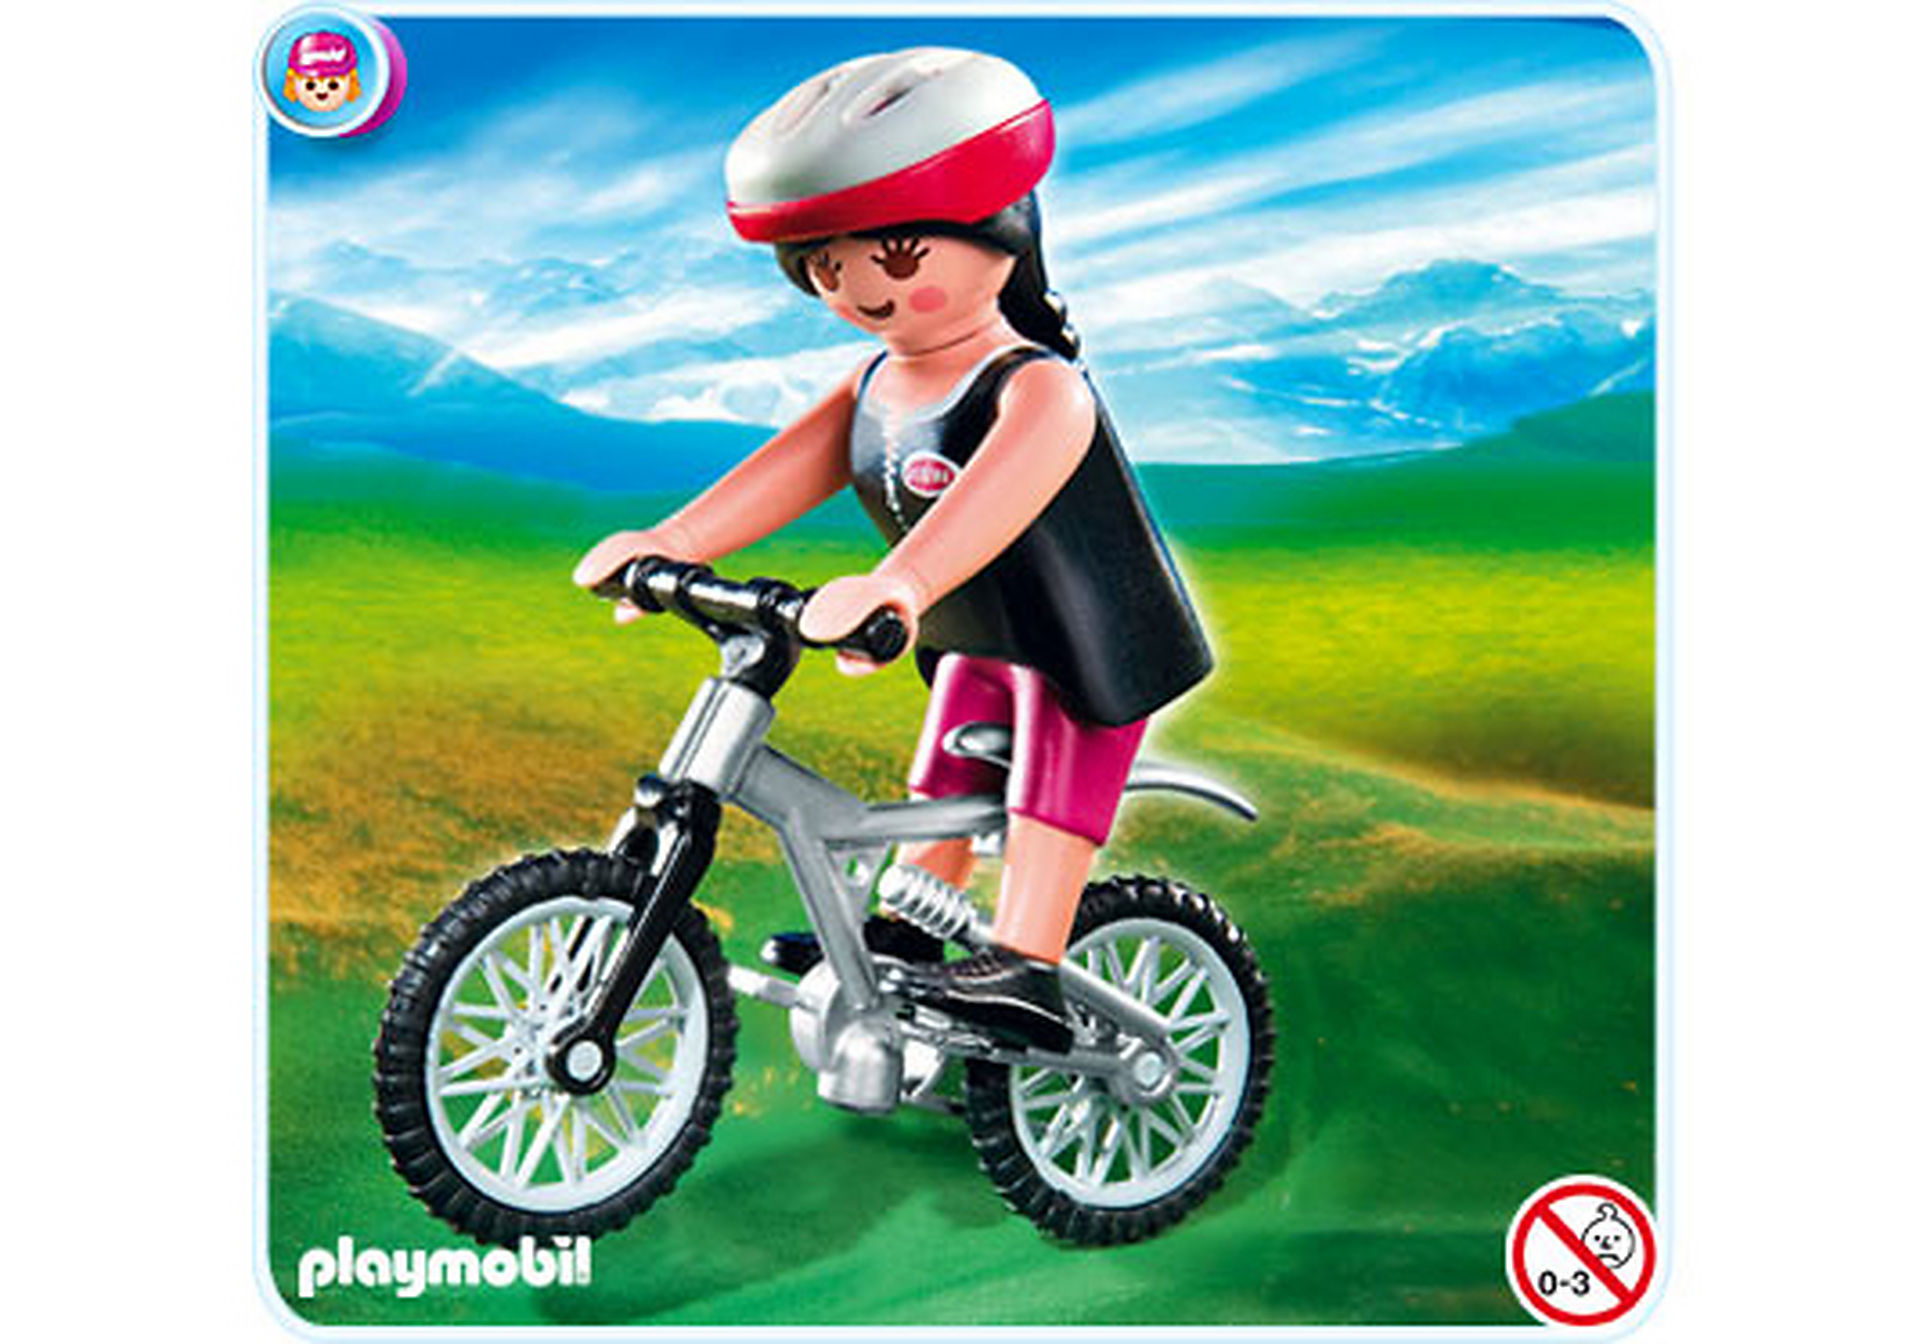 http://media.playmobil.com/i/playmobil/4743-A_product_detail/Mountainbikerin